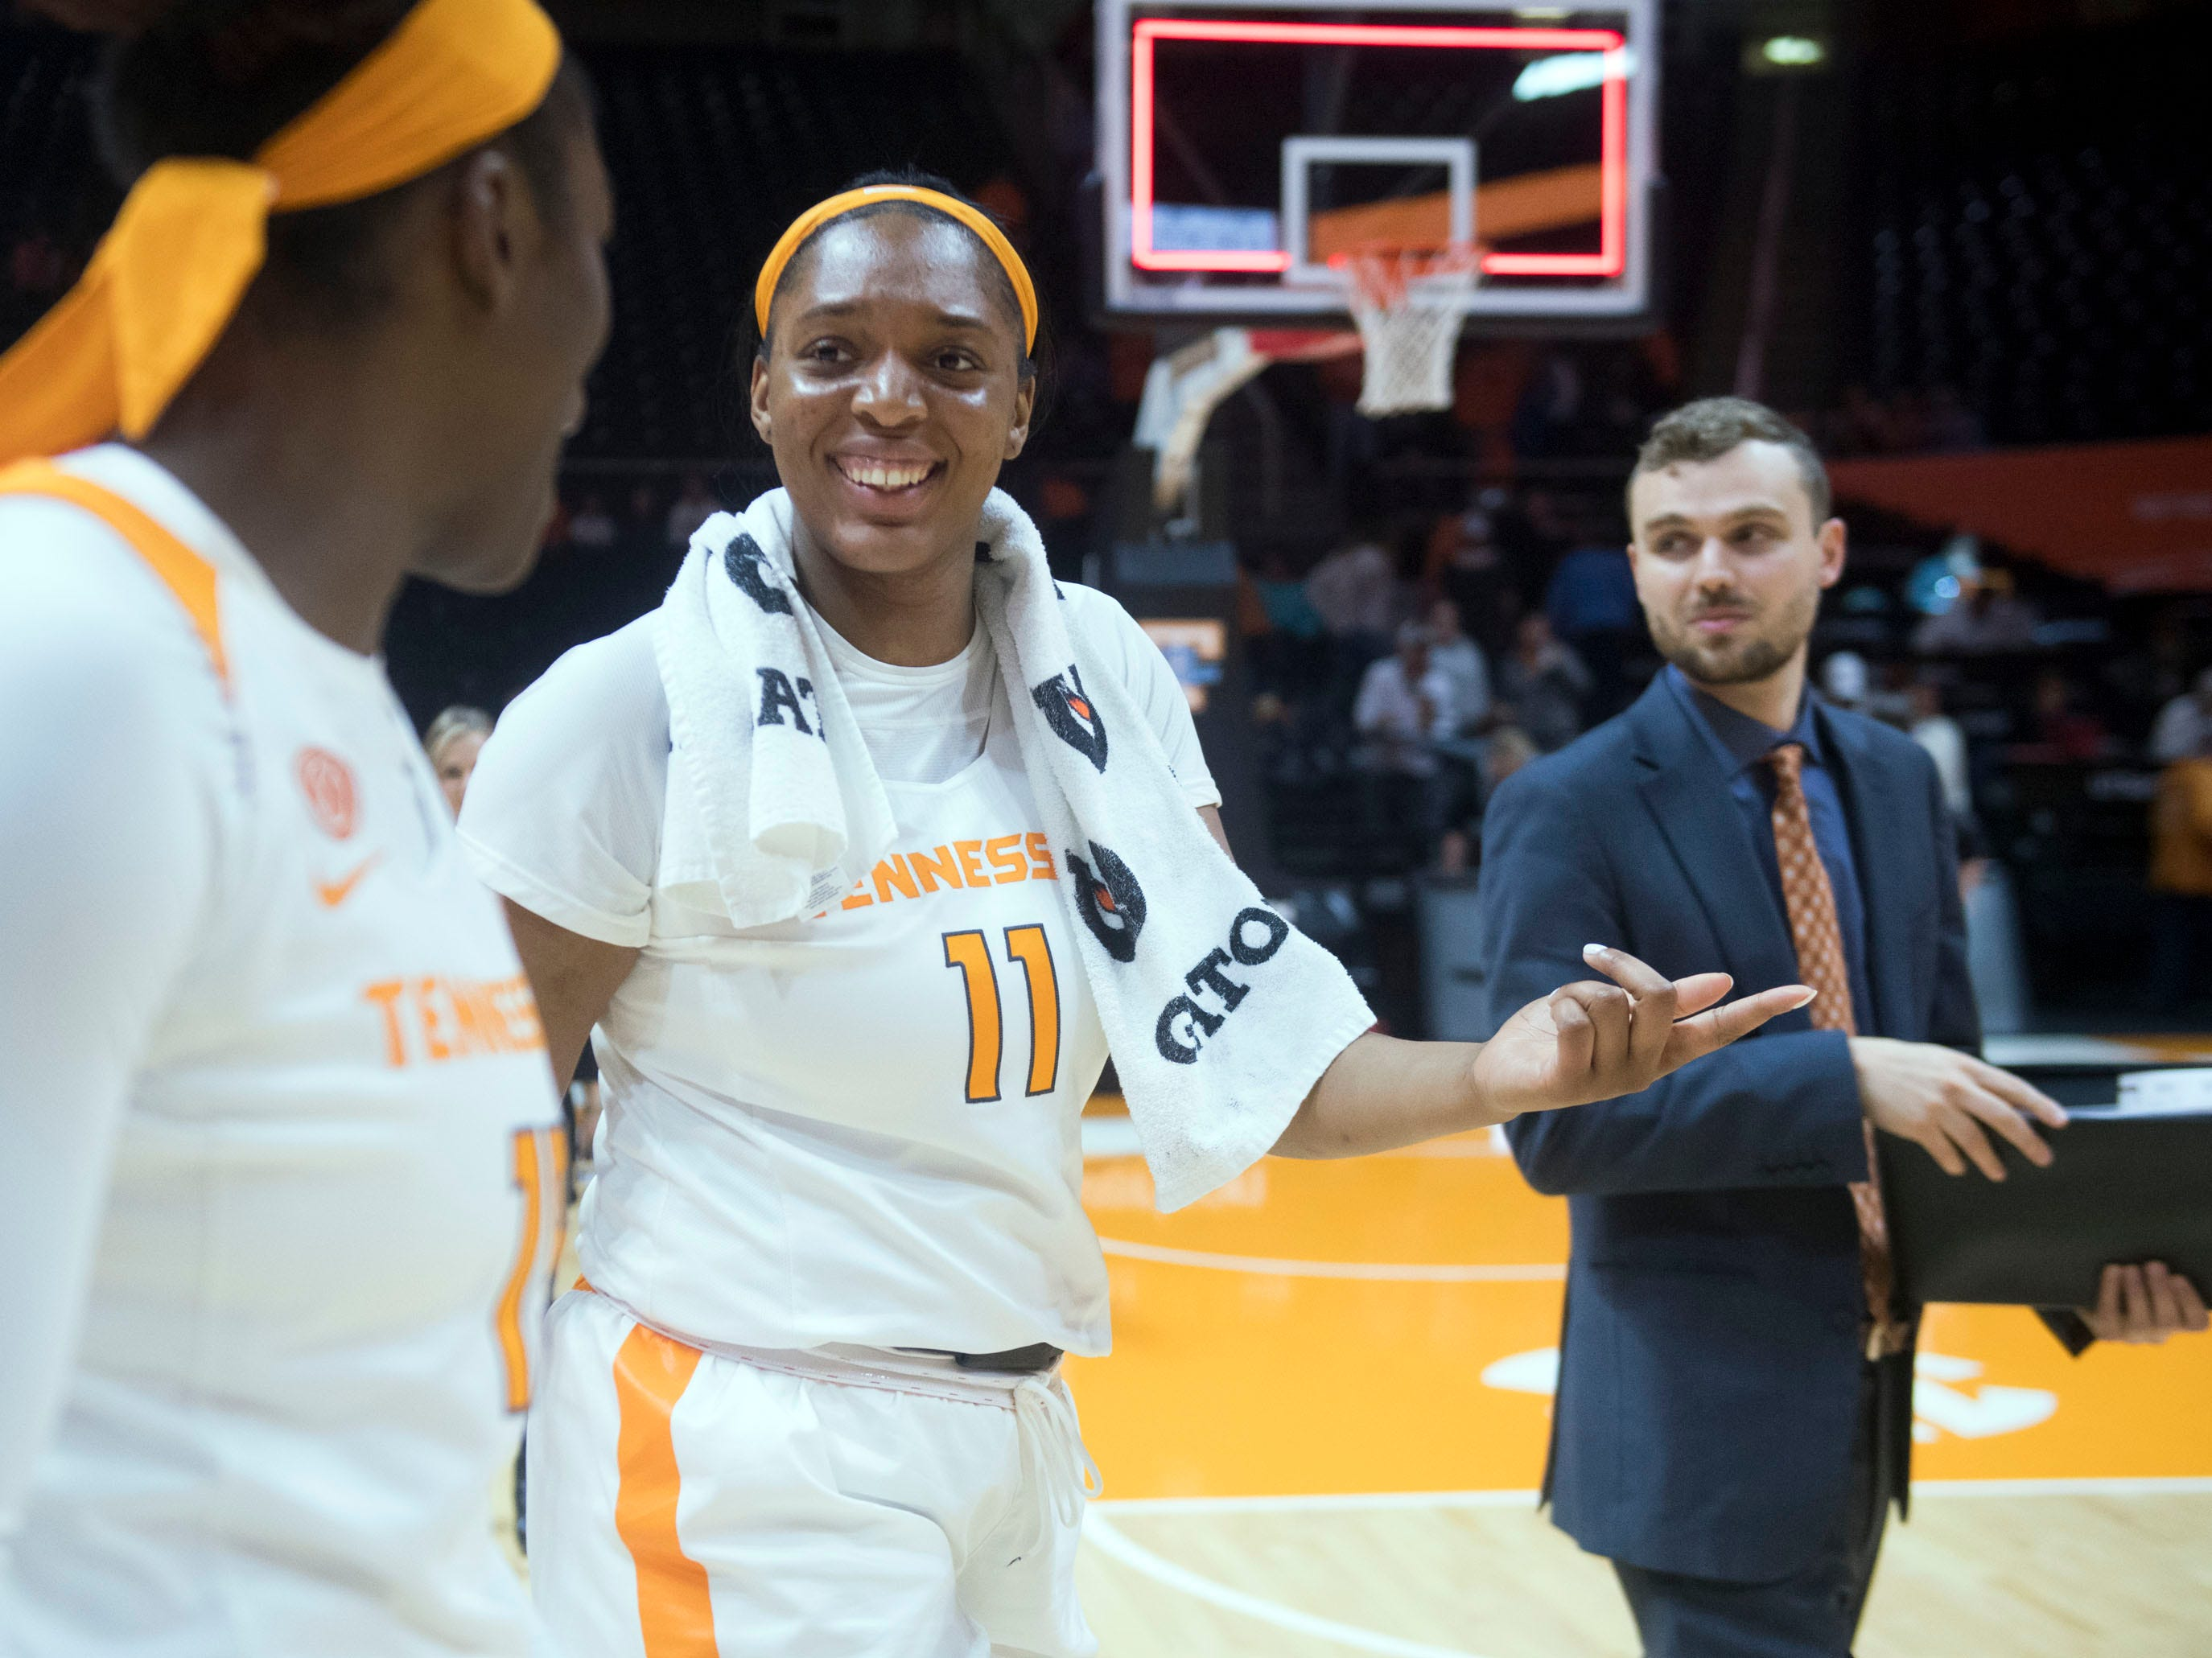 TennesseeÕs Kasiyahna Kushkituah (11) and Cheridene Green (15) at the end of the game against Florida A&M on Sunday, November 18, 2018 at Thompson-Boling Arena.